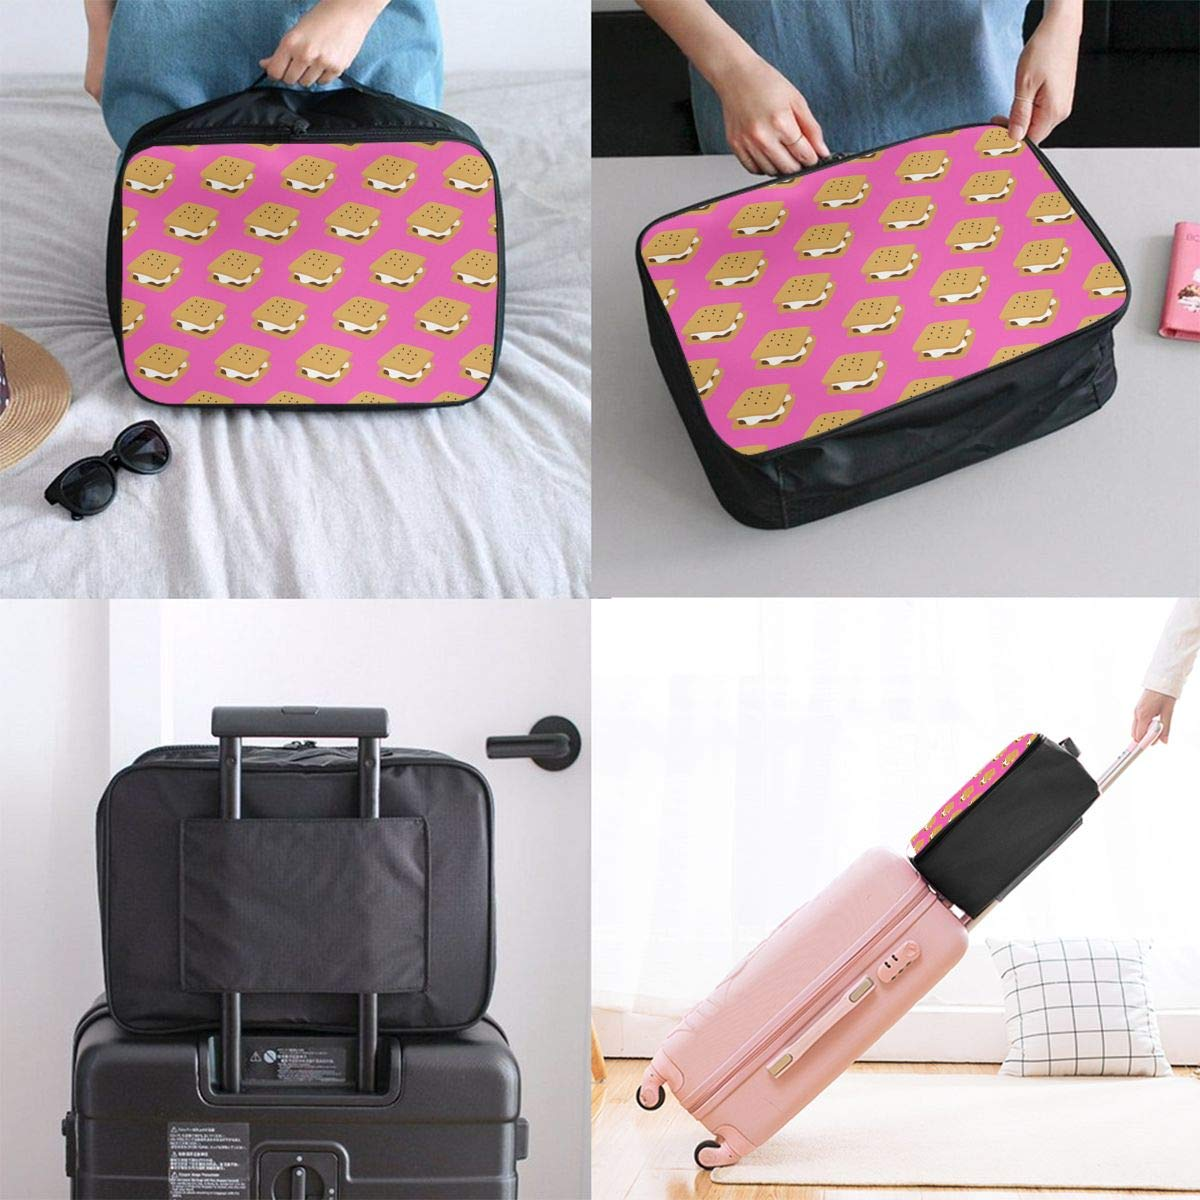 YueLJB Sandwich Biscuits Lightweight Large Capacity Portable Luggage Bag Travel Duffel Bag Storage Carry Luggage Duffle Tote Bag